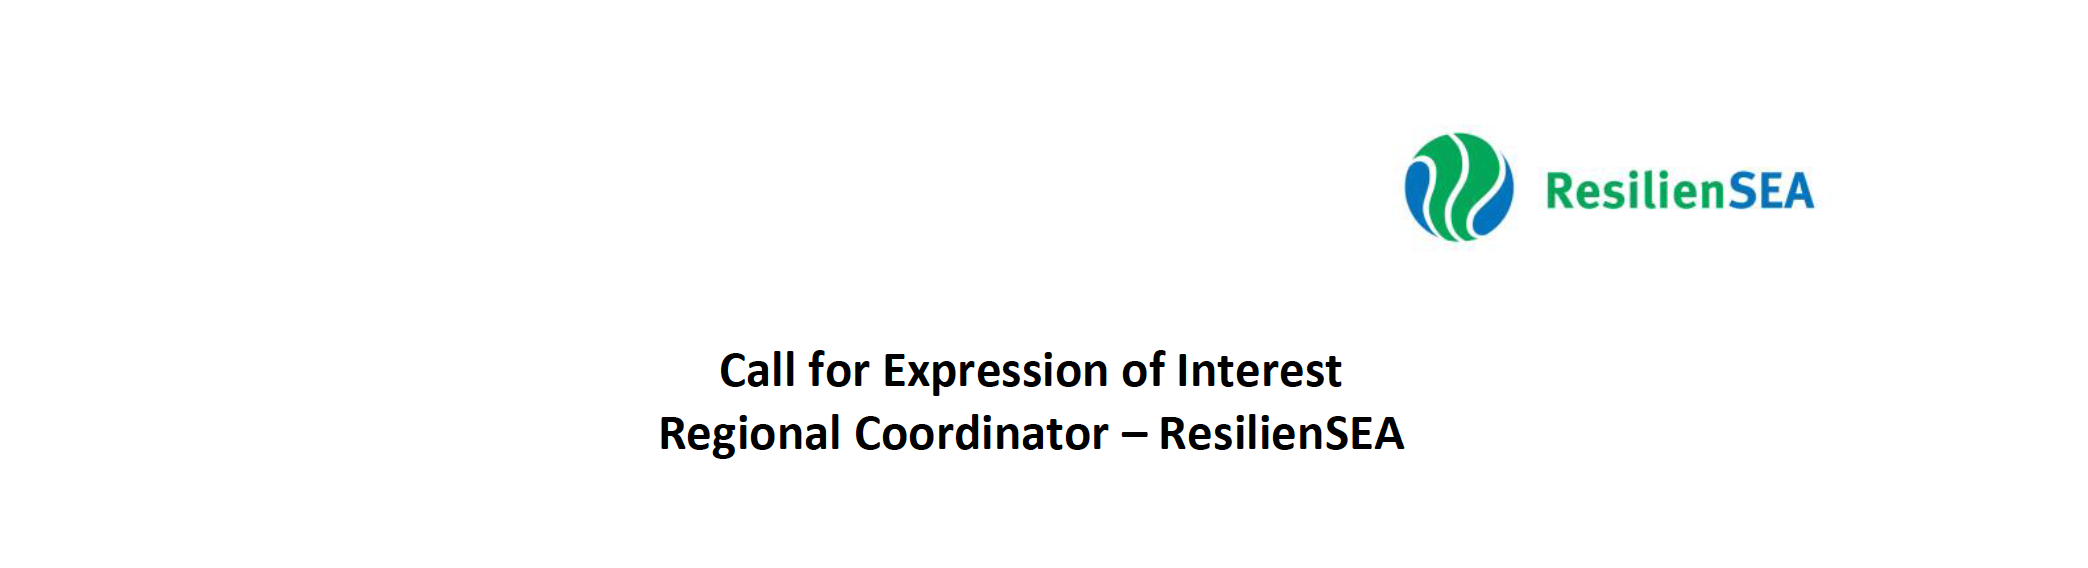 Call For Expression Of Interest Regional Coordinator – ResilienSEA